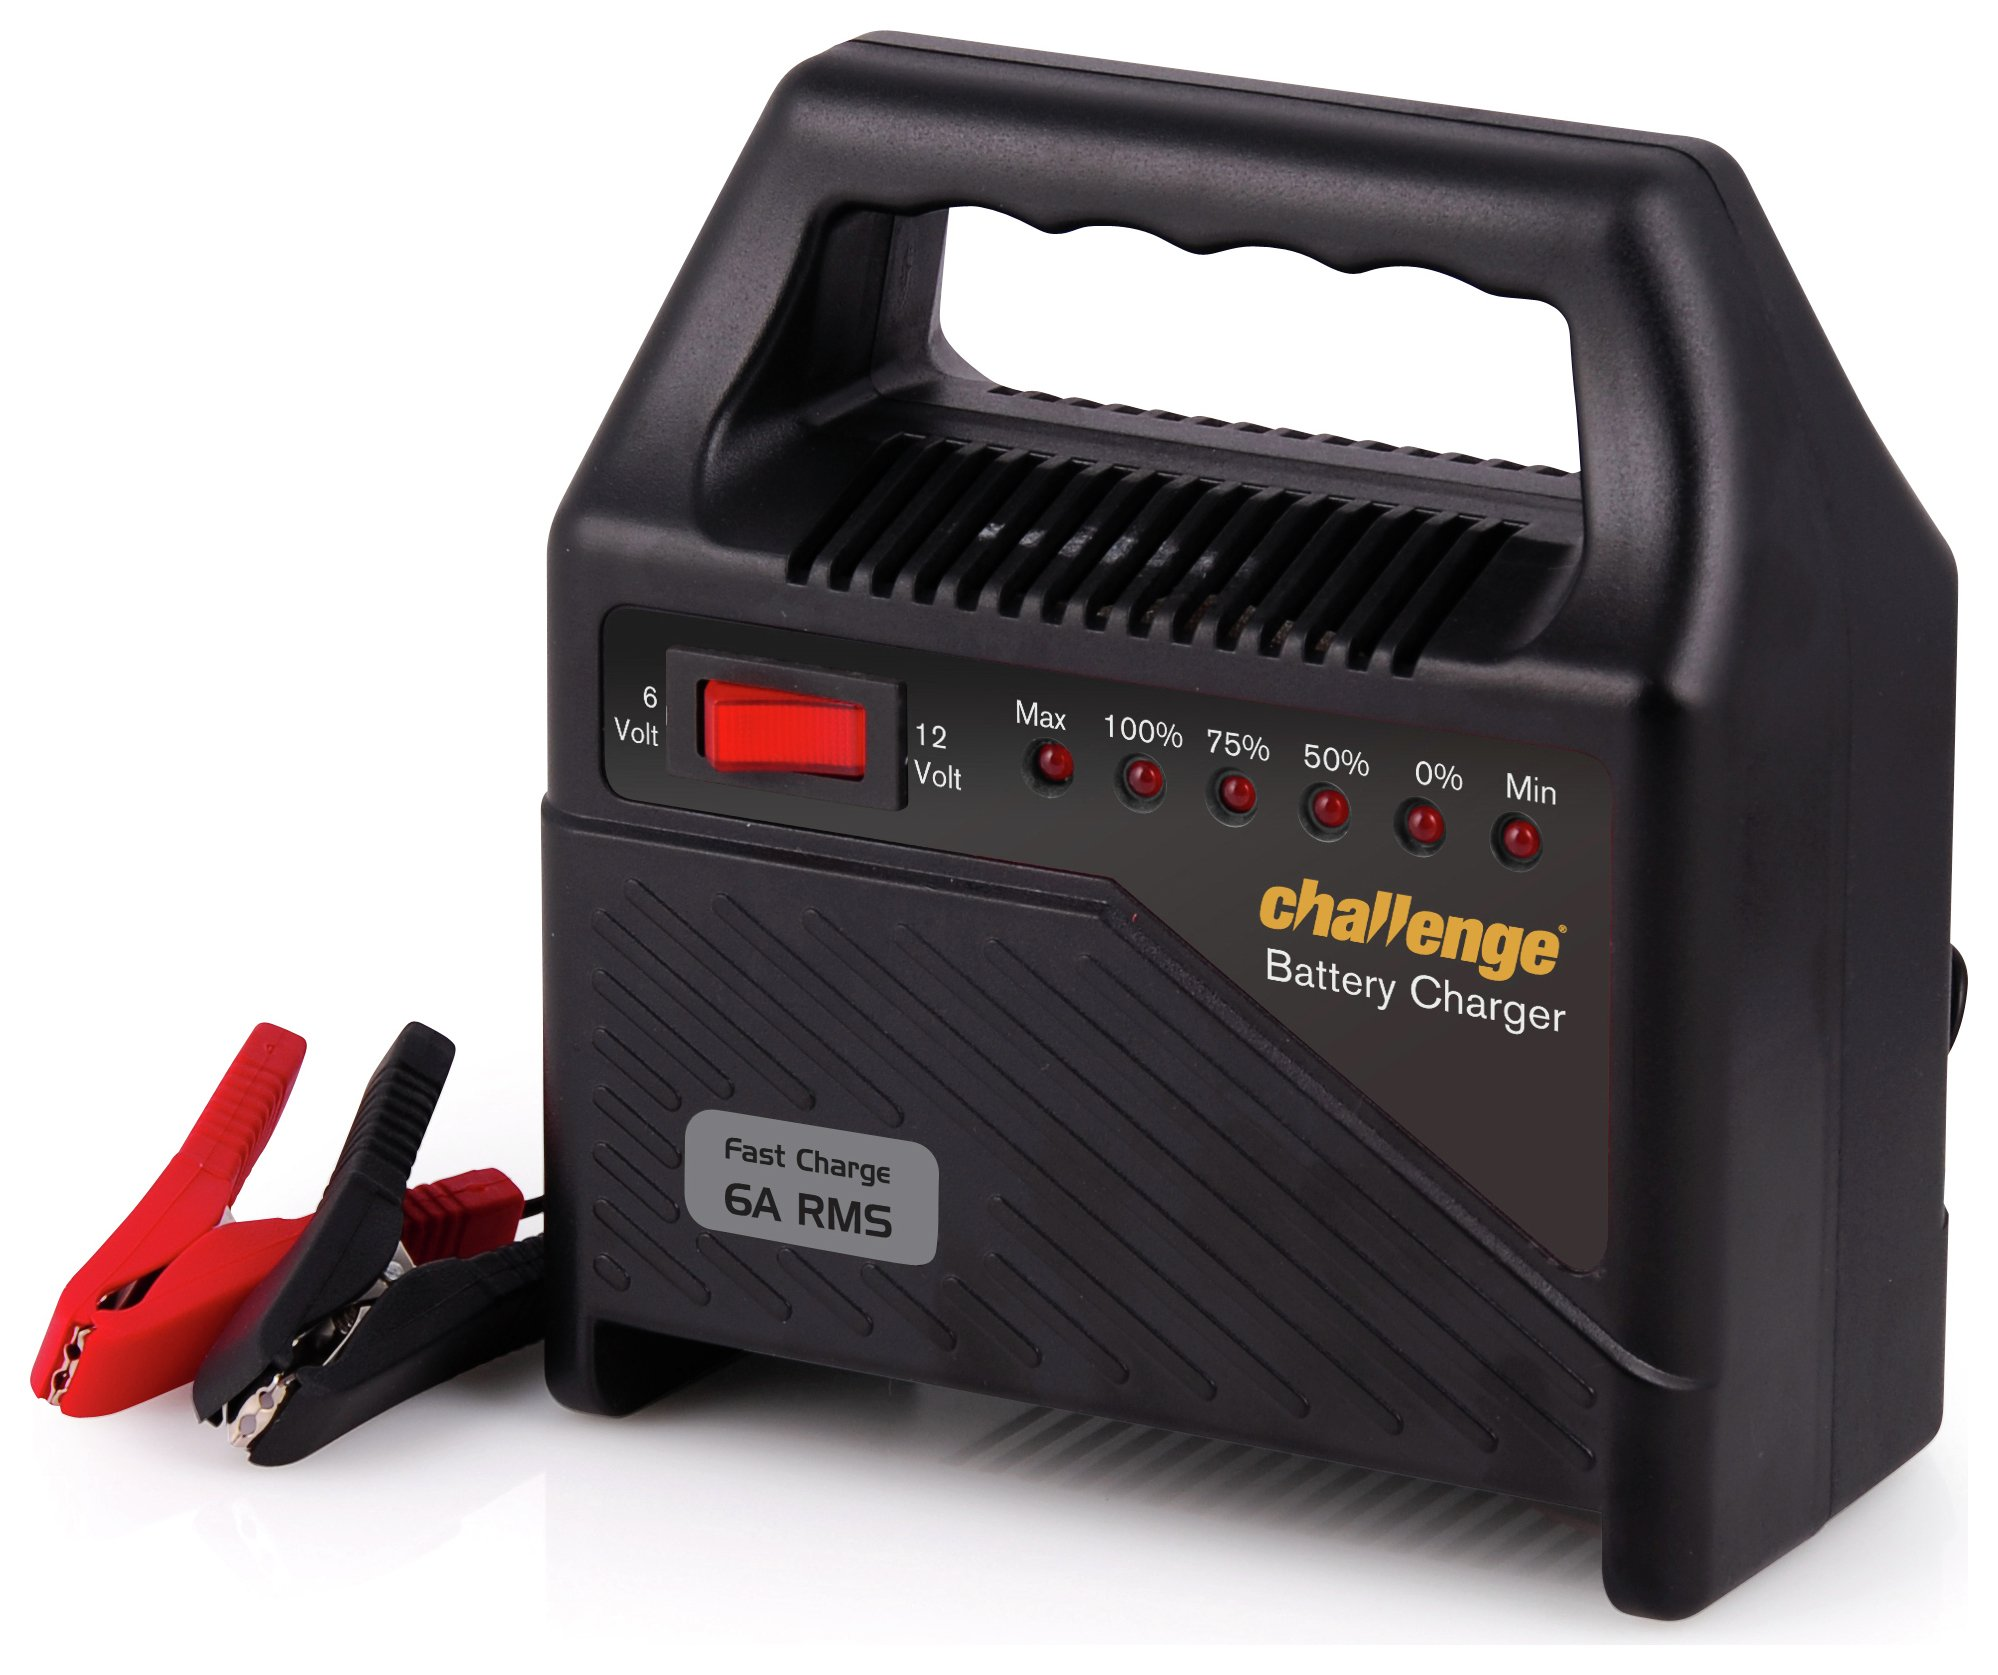 challenge 6 amp 12v automatic car battery charger. Black Bedroom Furniture Sets. Home Design Ideas